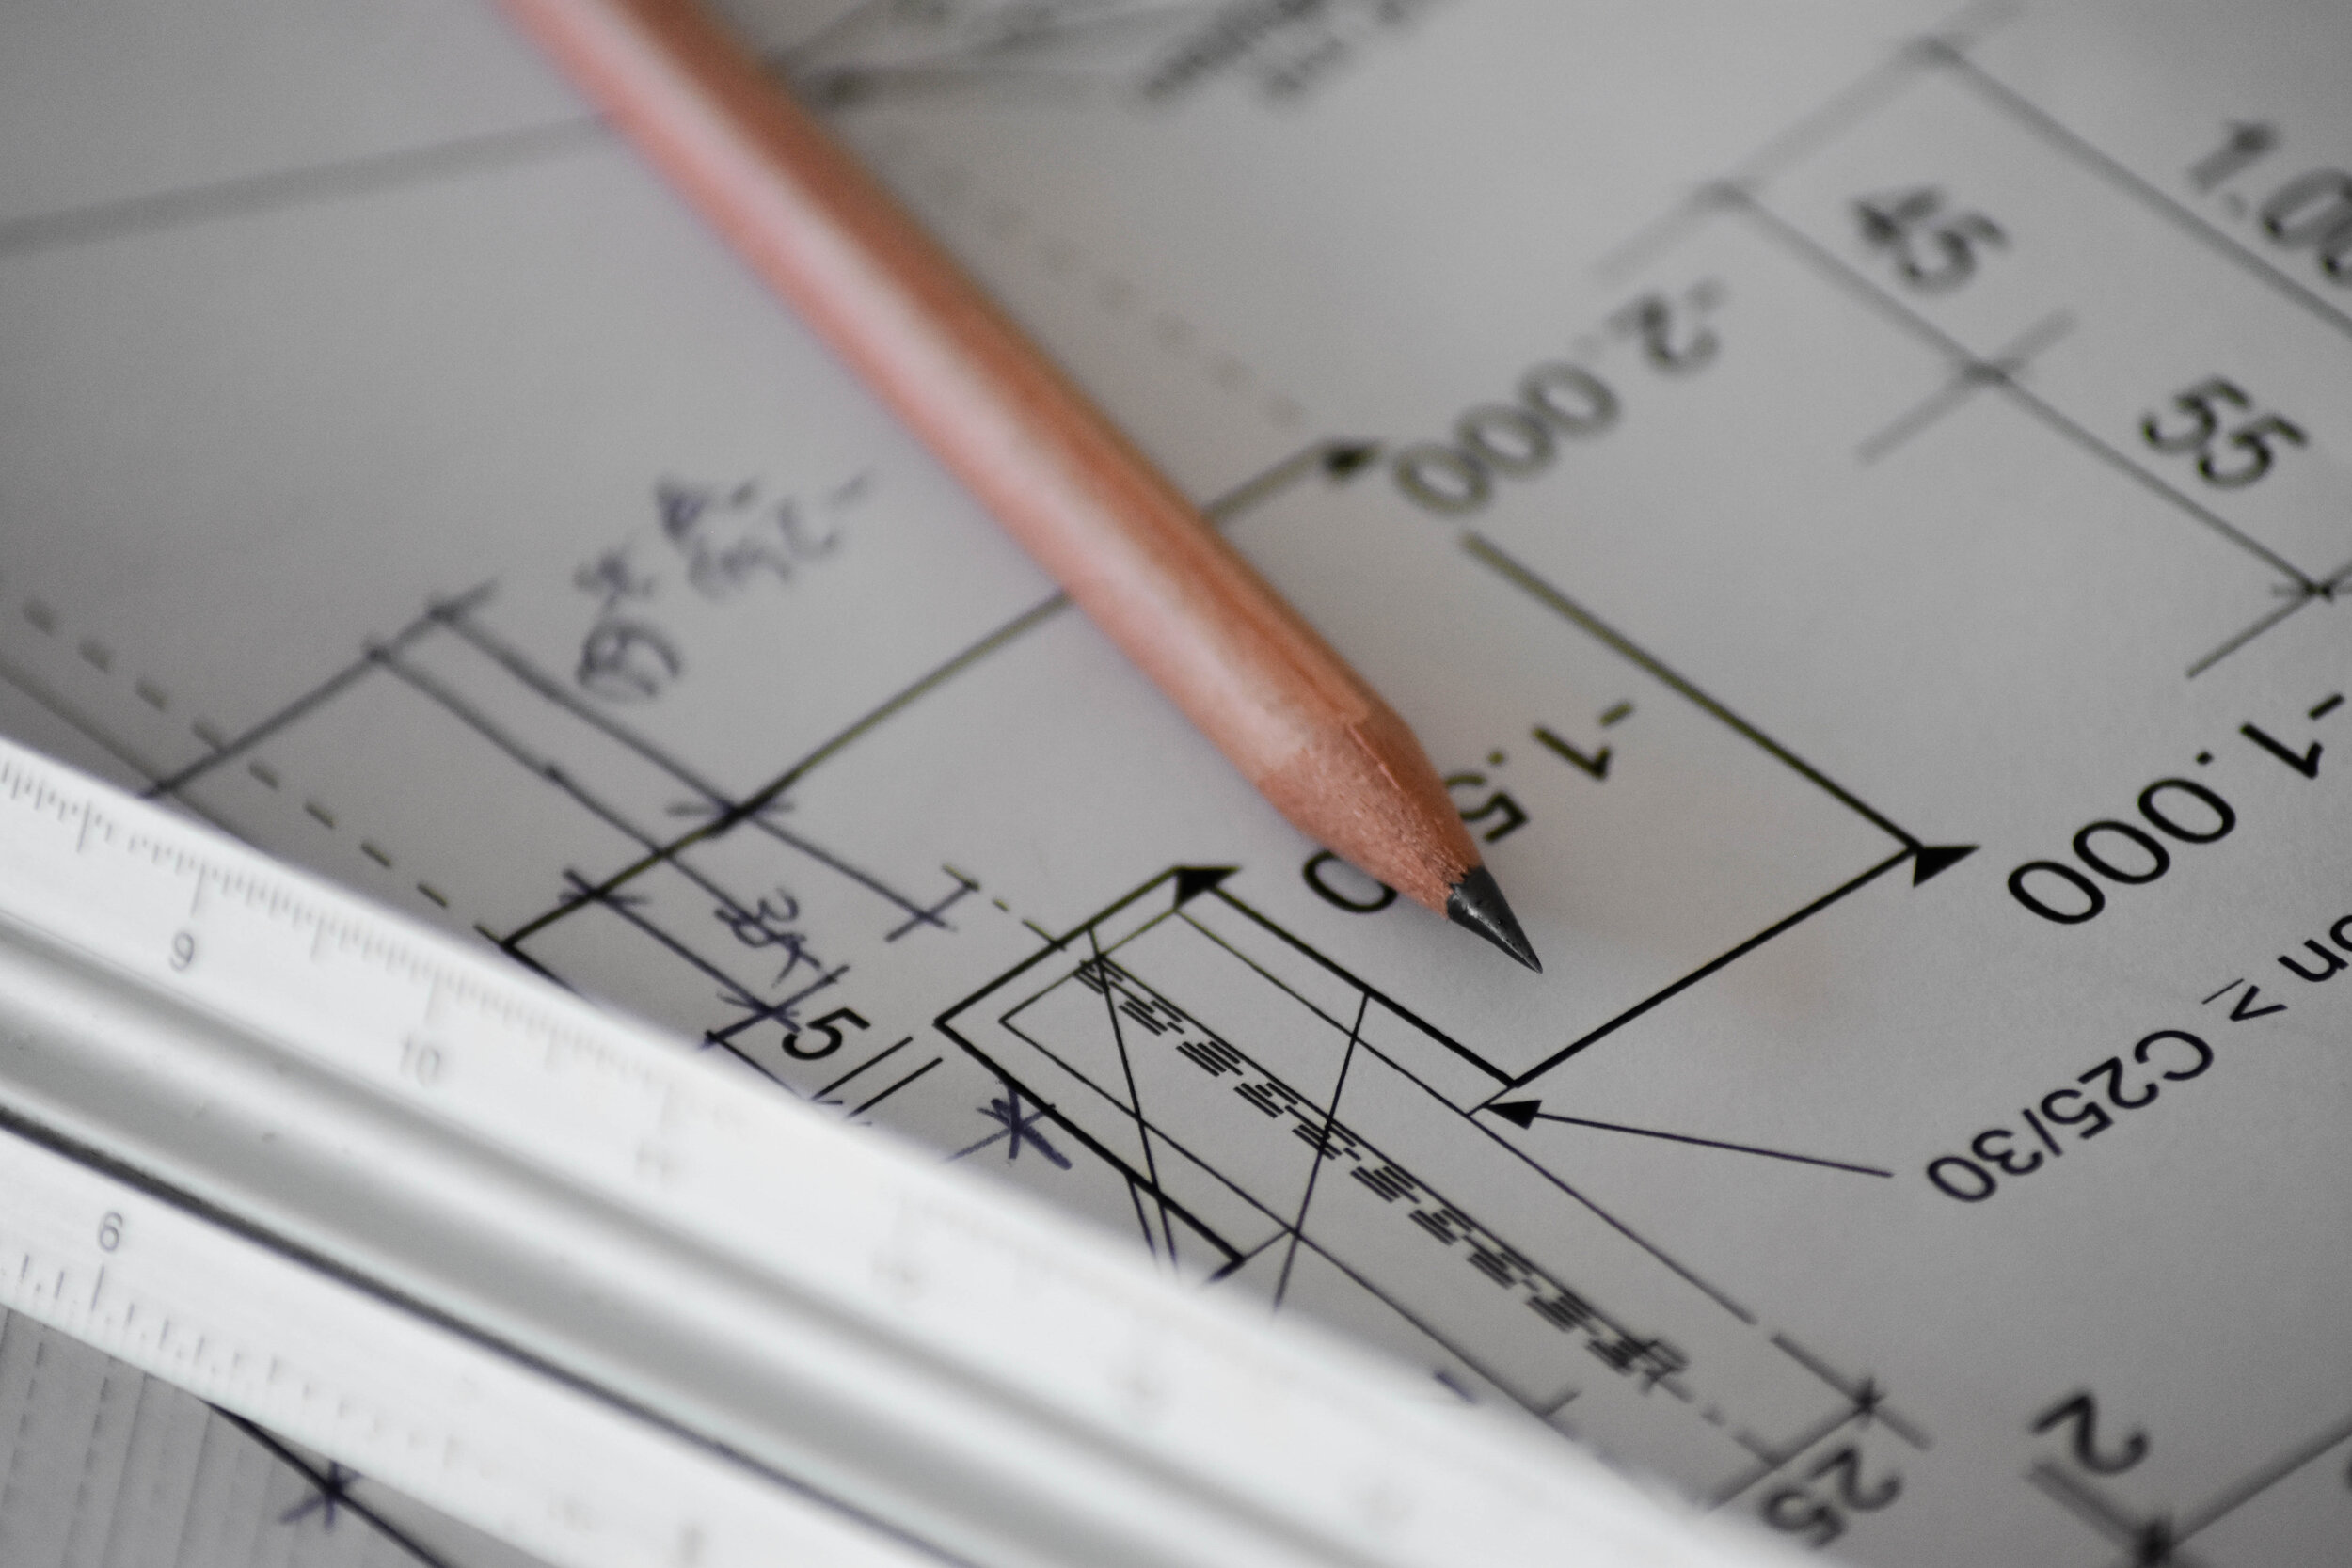 Pre-design & NEED ANALYSIS - Analysis of the existing spaces and conditionsalong with the pre-determined building requirements